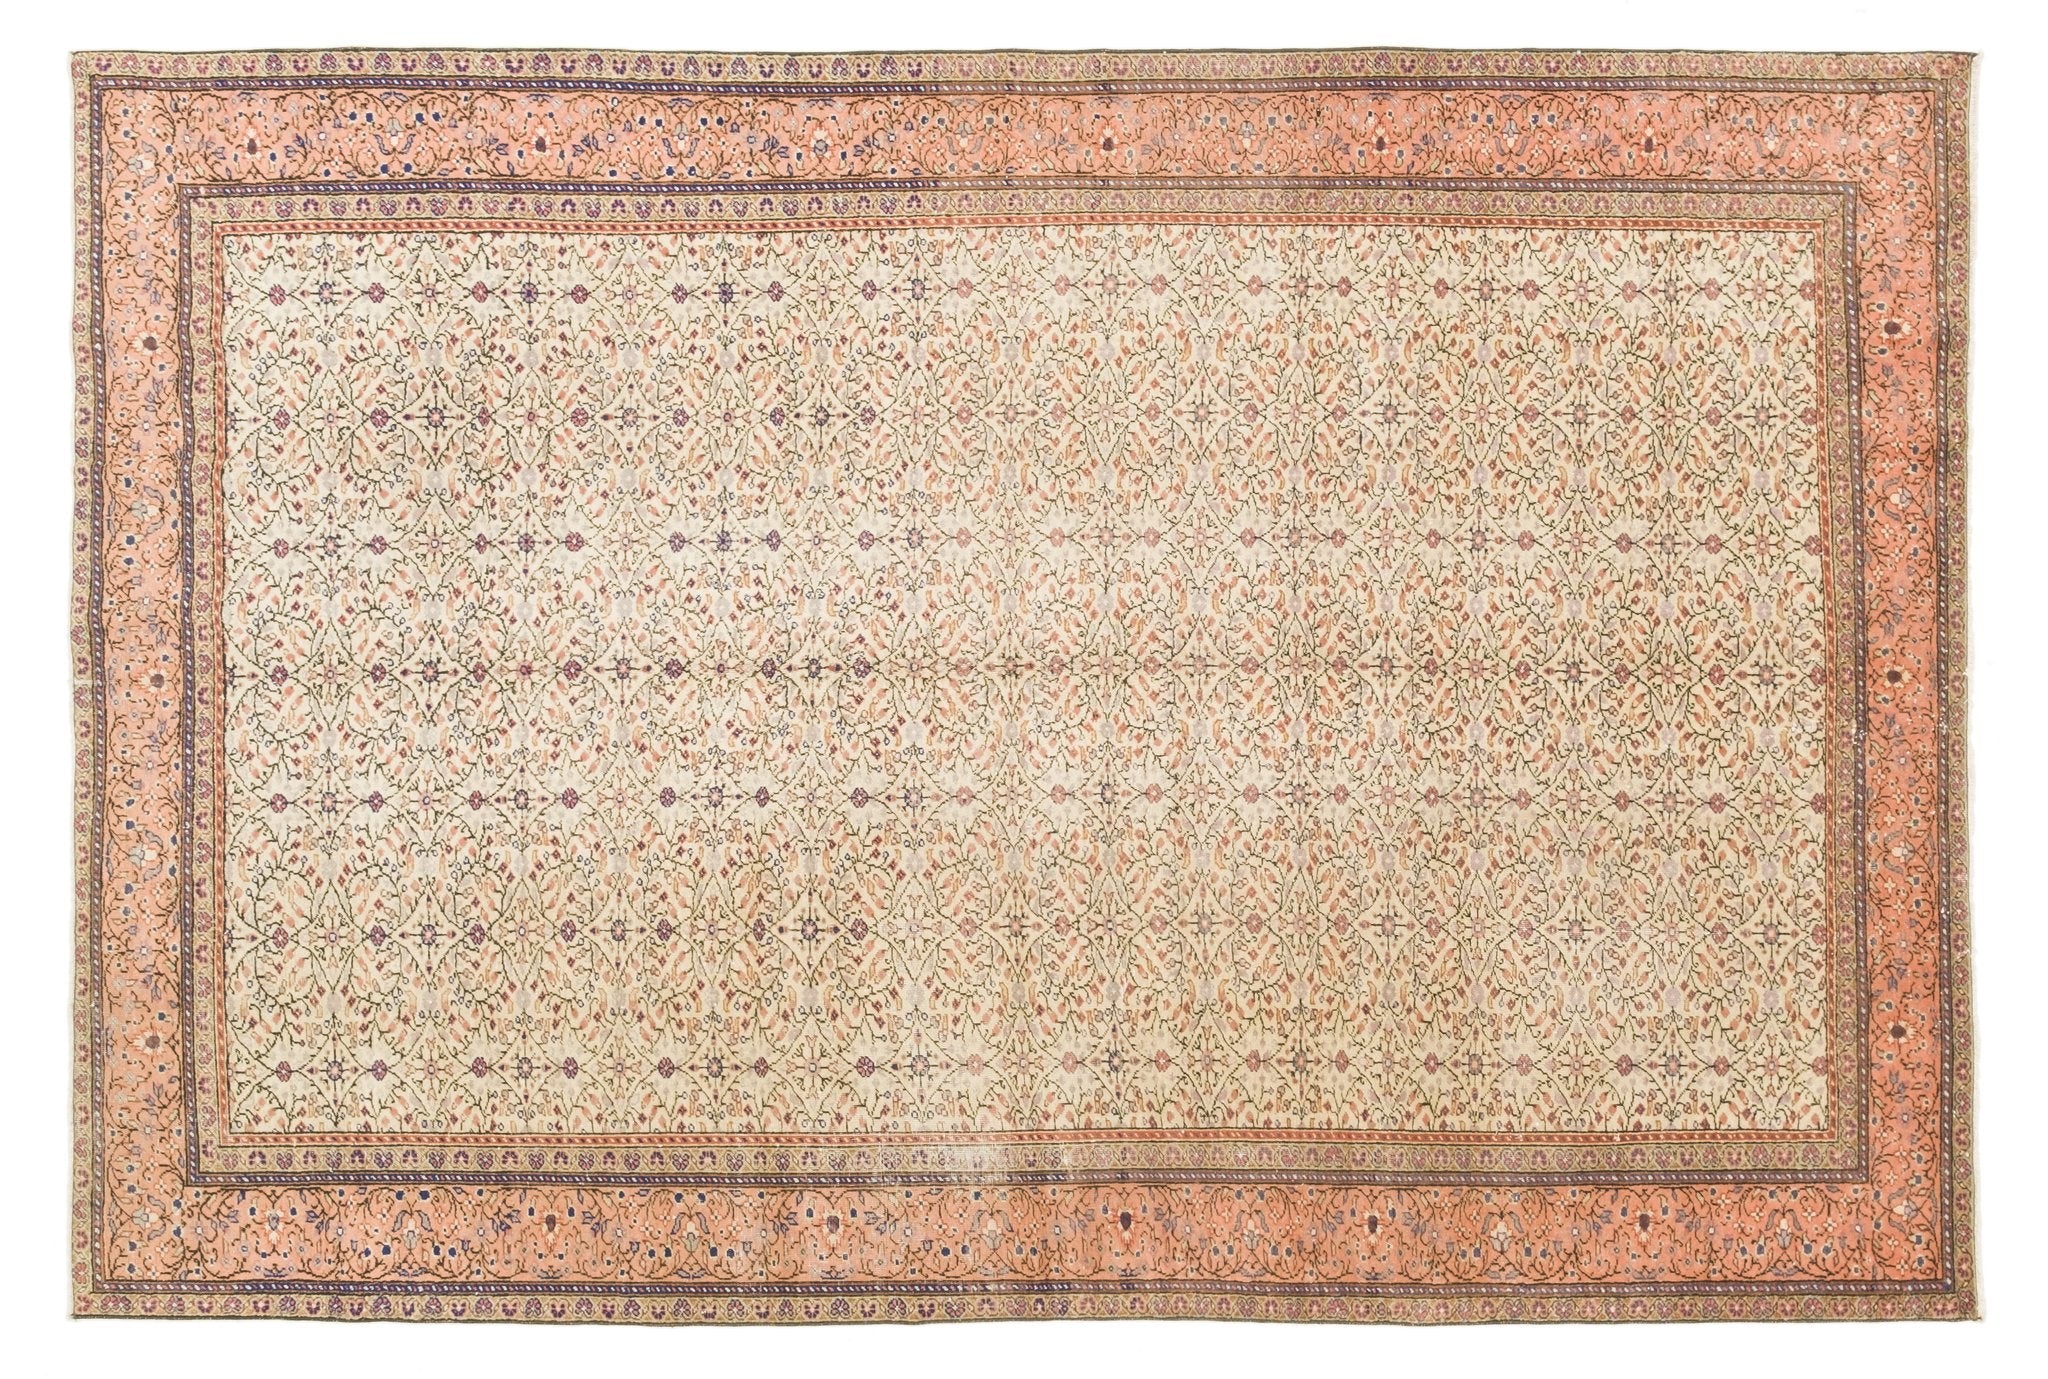 Vintage Turkish Rug Arlota